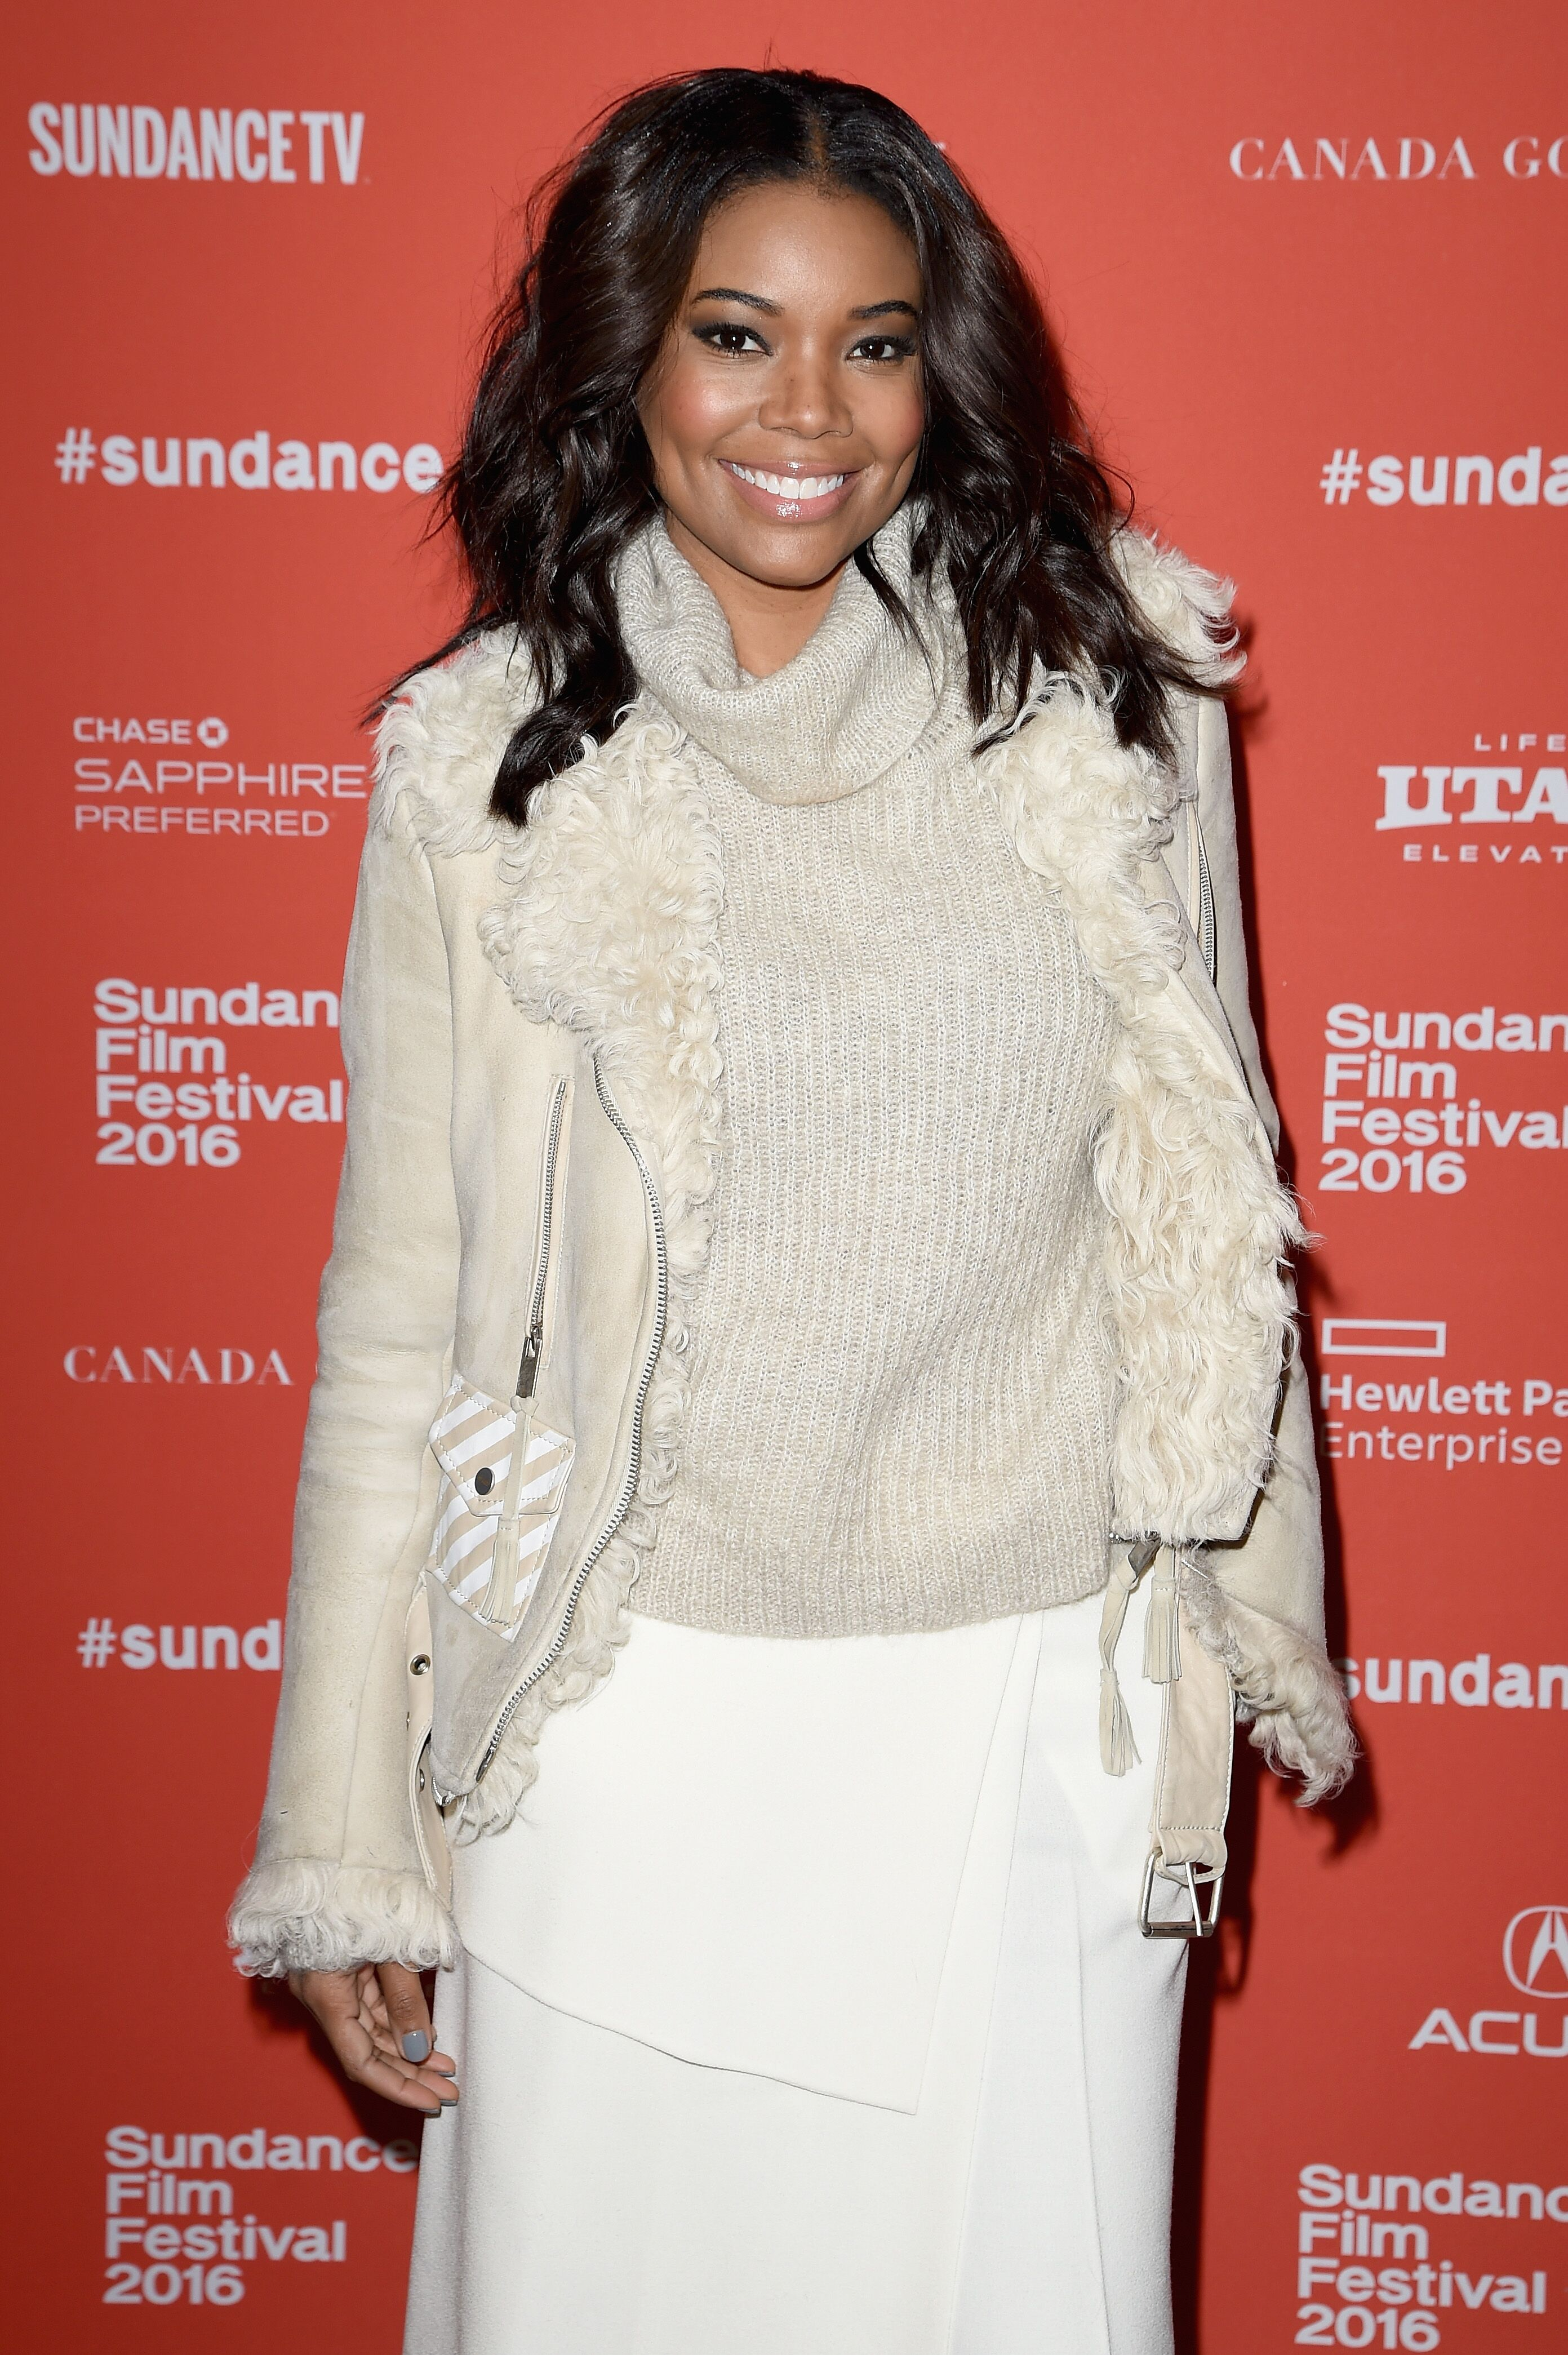 Gabrielle Union at the Sundance Film Festival on January 25, 2016.   Source: Getty Images